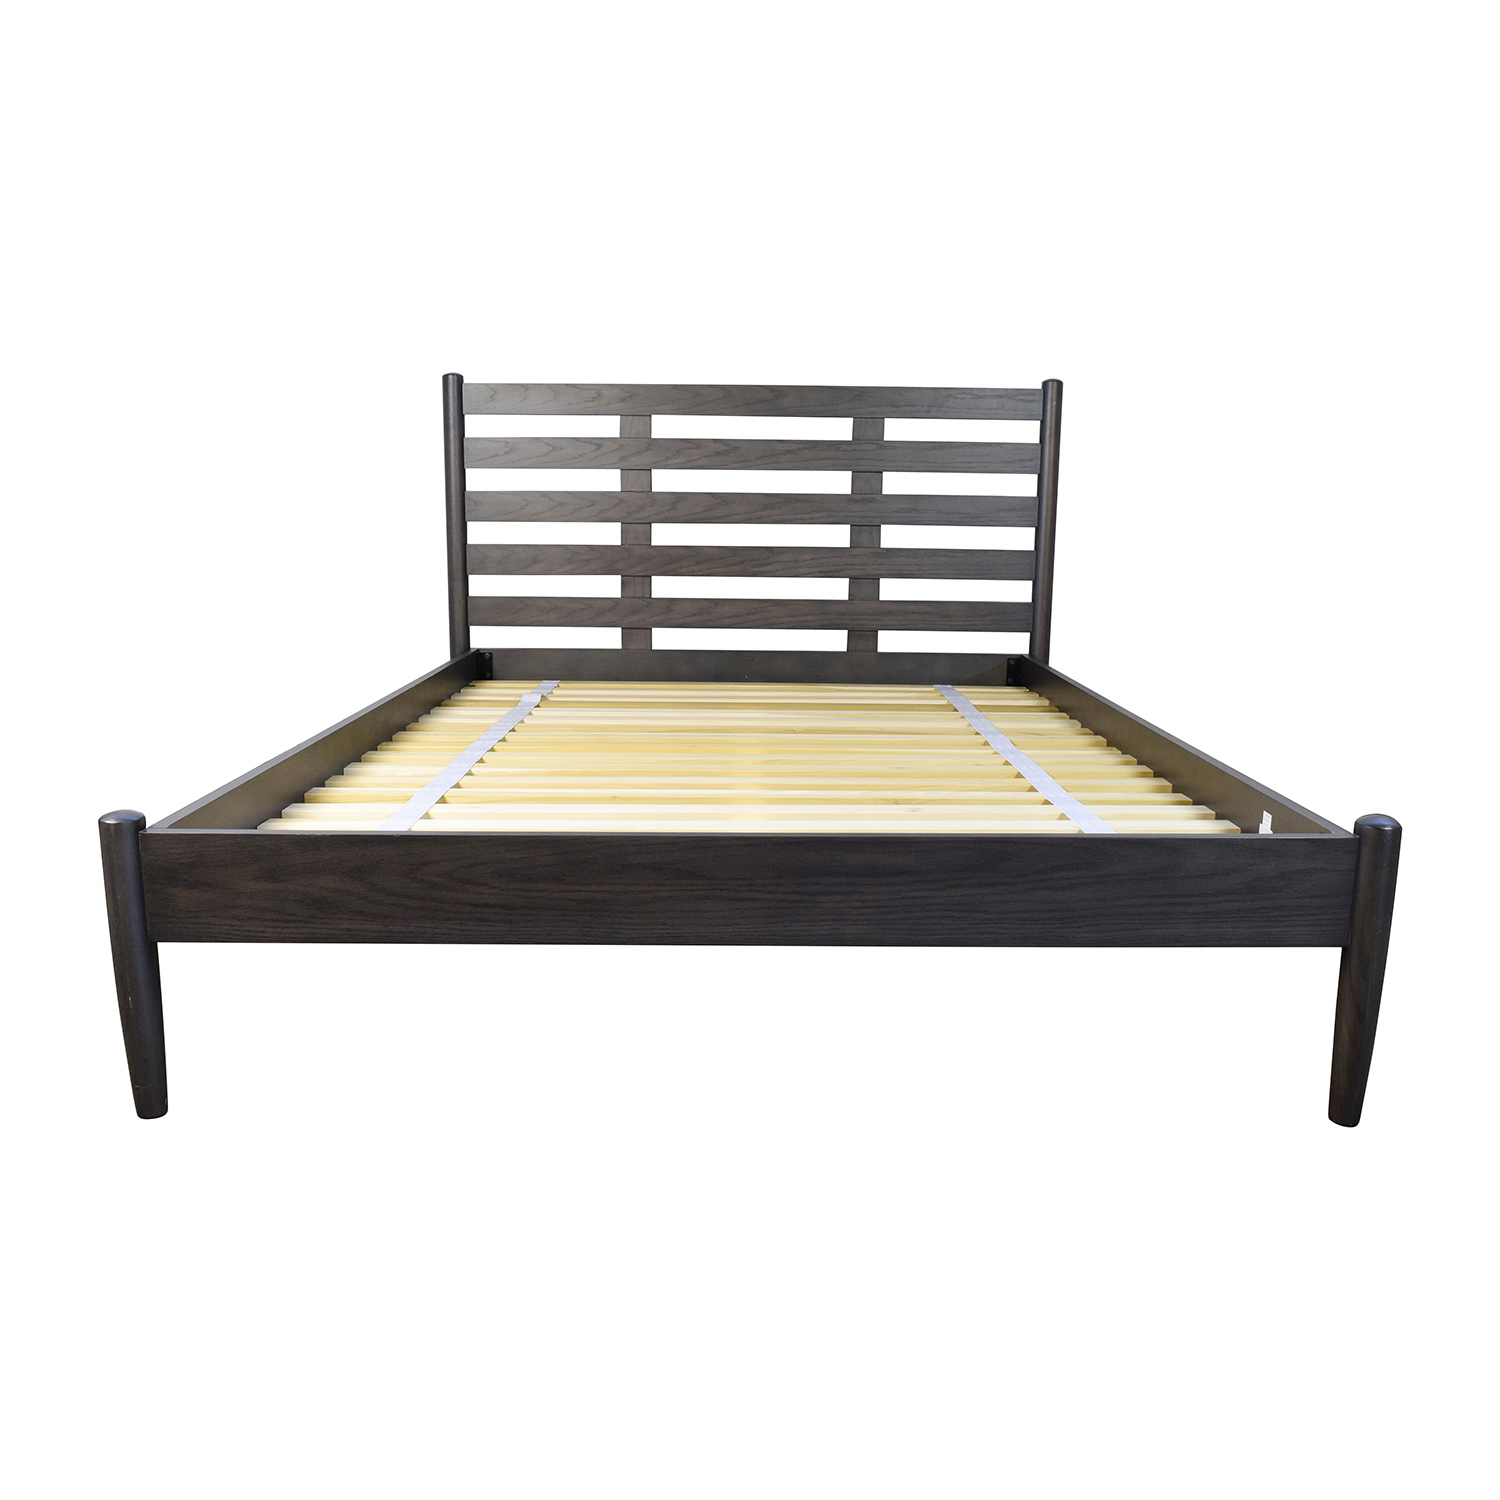 Crate and barrel bed frame custom atwood bed without bookcase footboard crate and barrel Queen bed and mattress